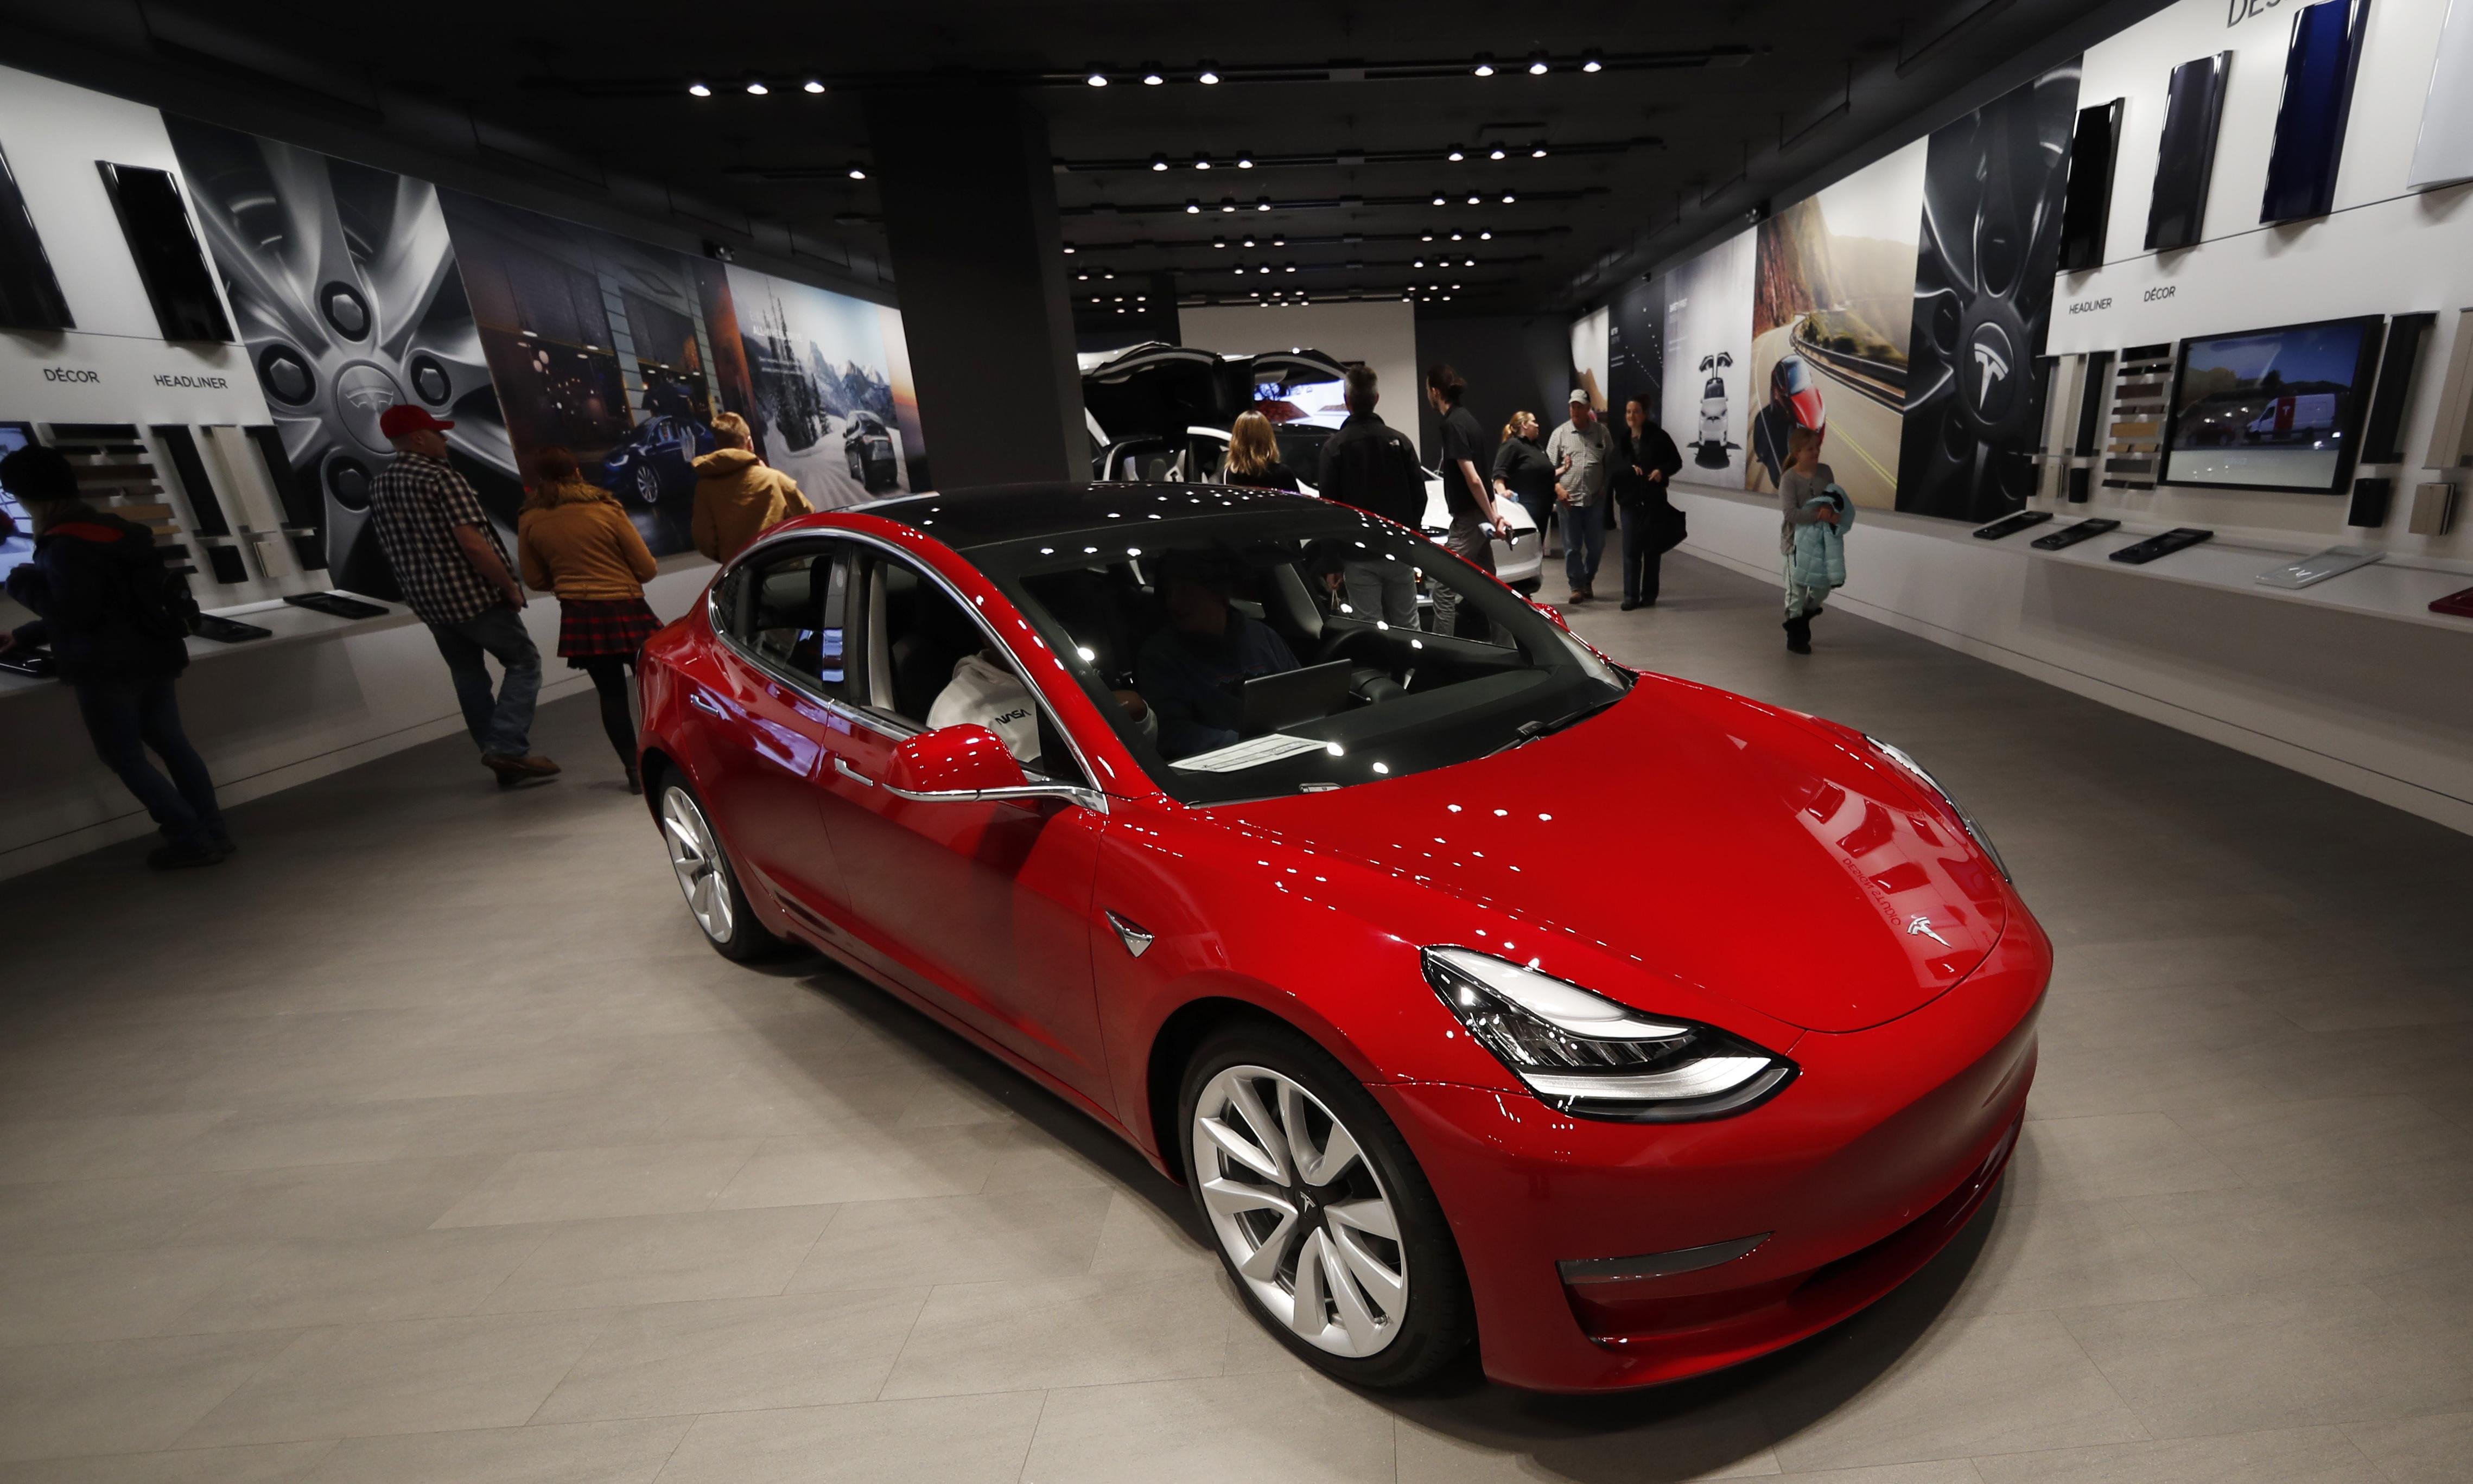 Tesla cuts car prices, shuts stores and shifts to online-only sales